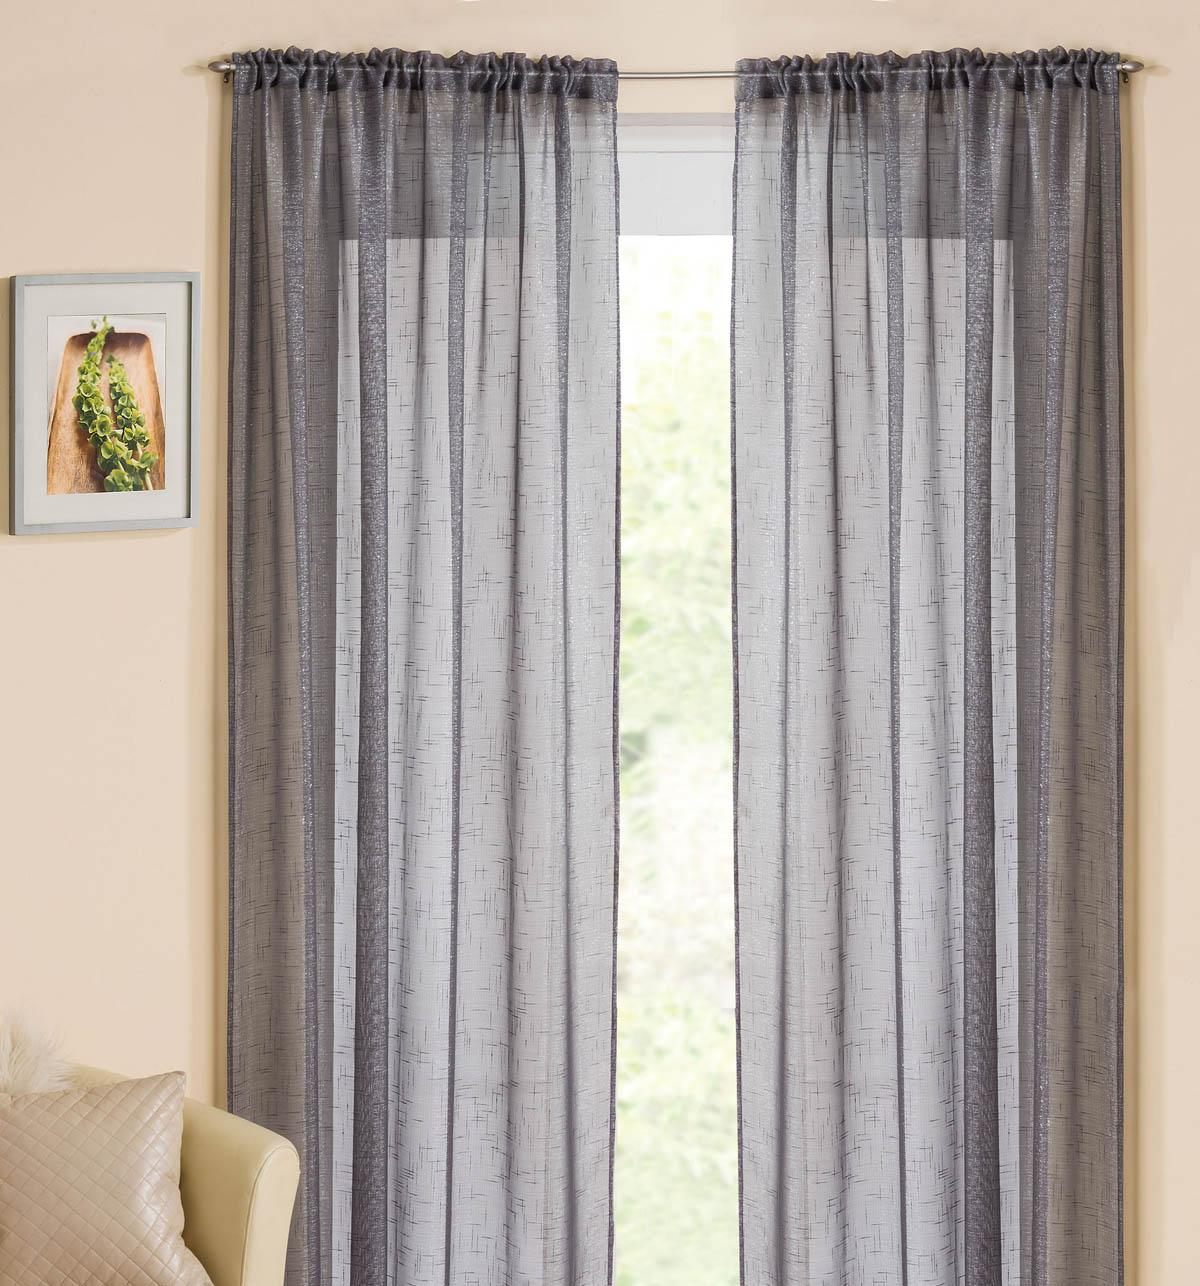 Casablanca Rod Pocket Voile Panel - Silver Bedroom Curtains High Quality Window Curtains Terrys